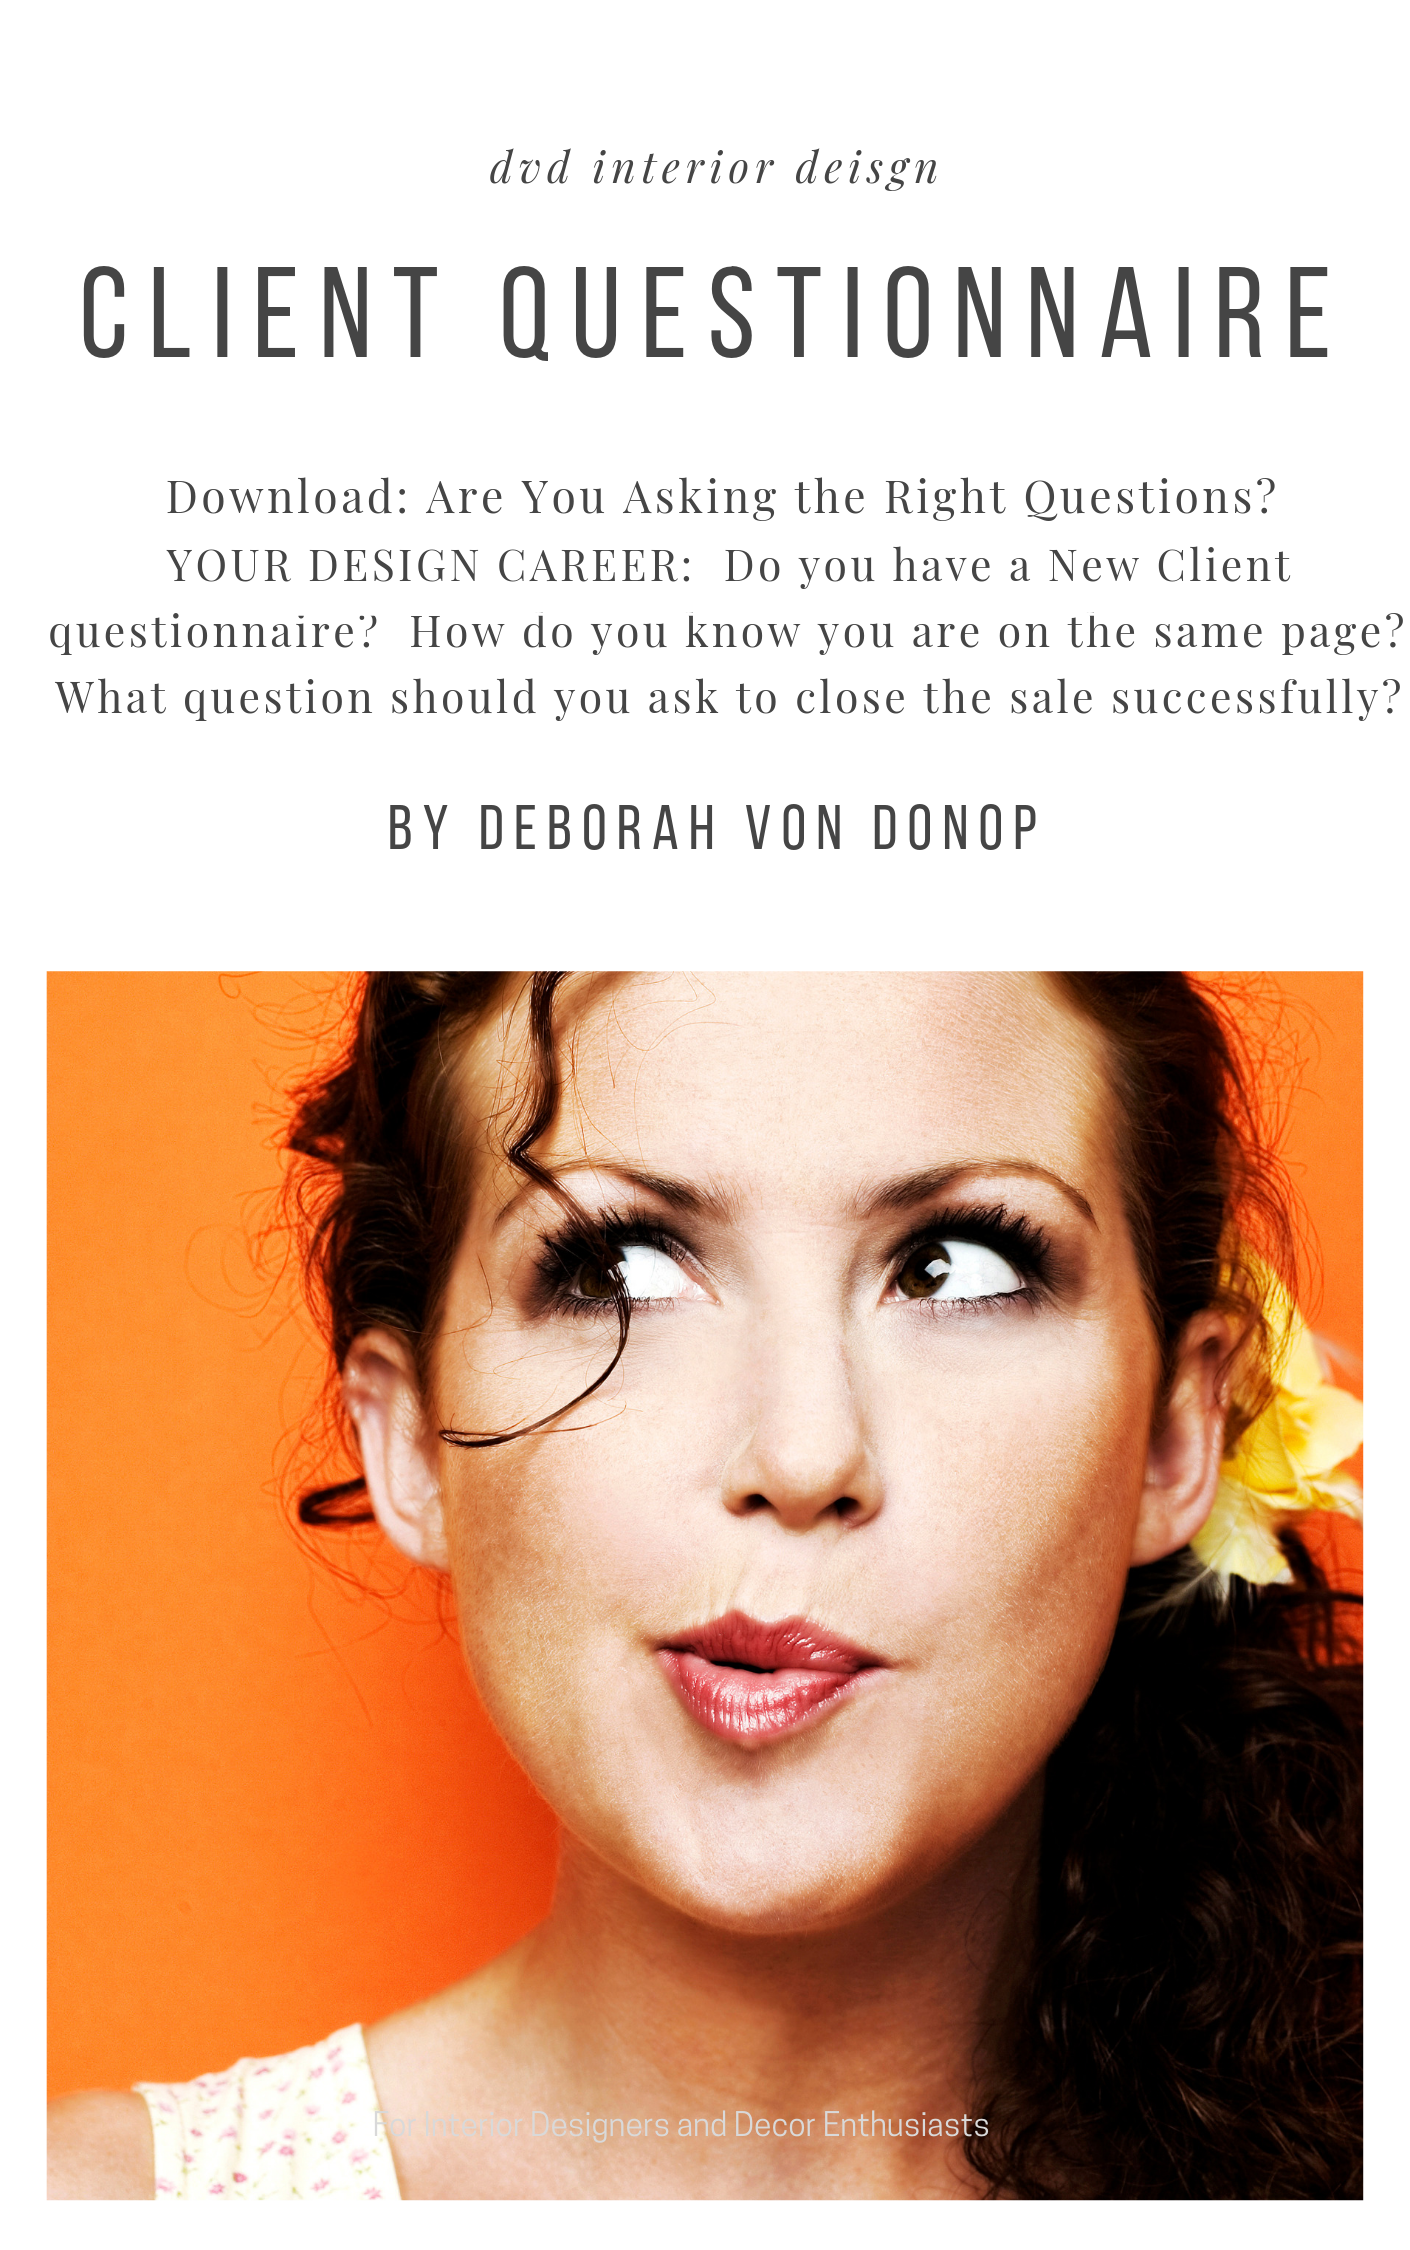 New Client Questionnaire Are You Asking The Right Questions Dvd Interior Design